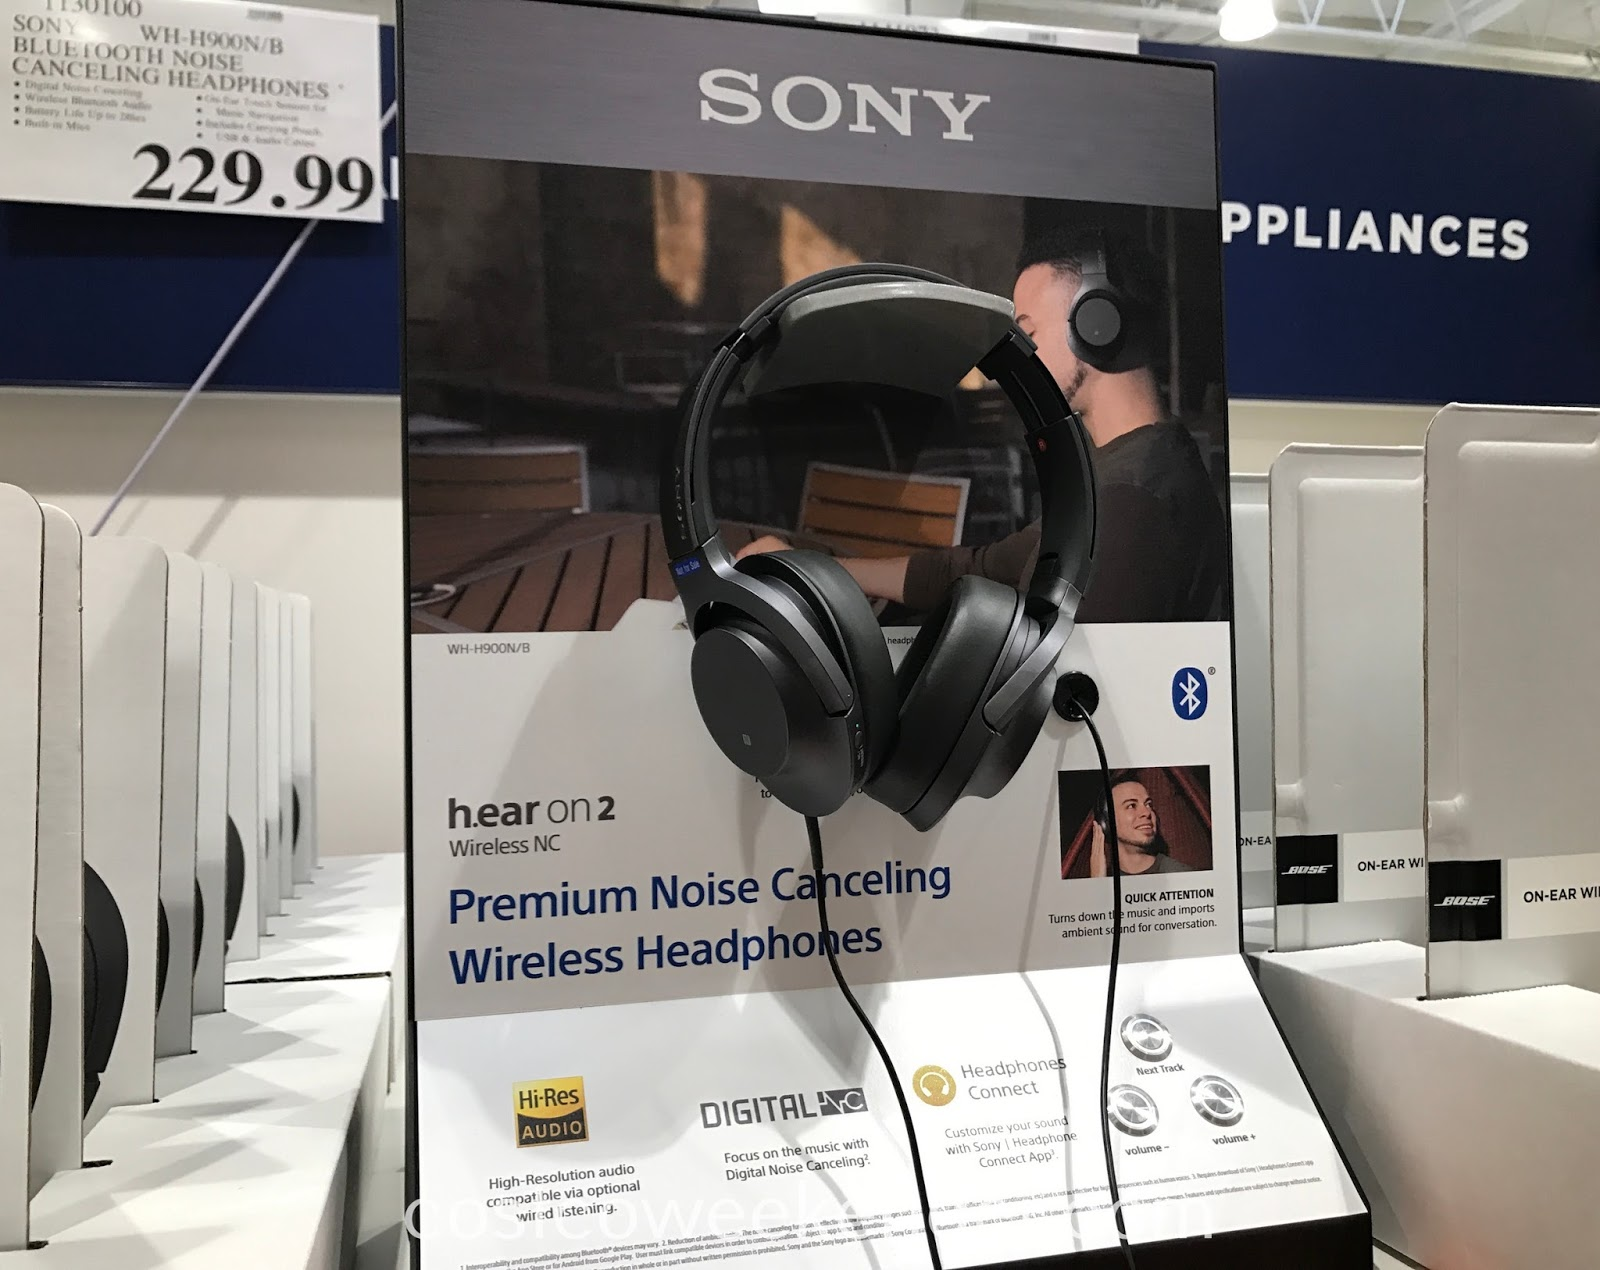 Listen to your favorite songs with the Sony h.ear on 2 Noise Canceling Wireless Headphones WH-H900N